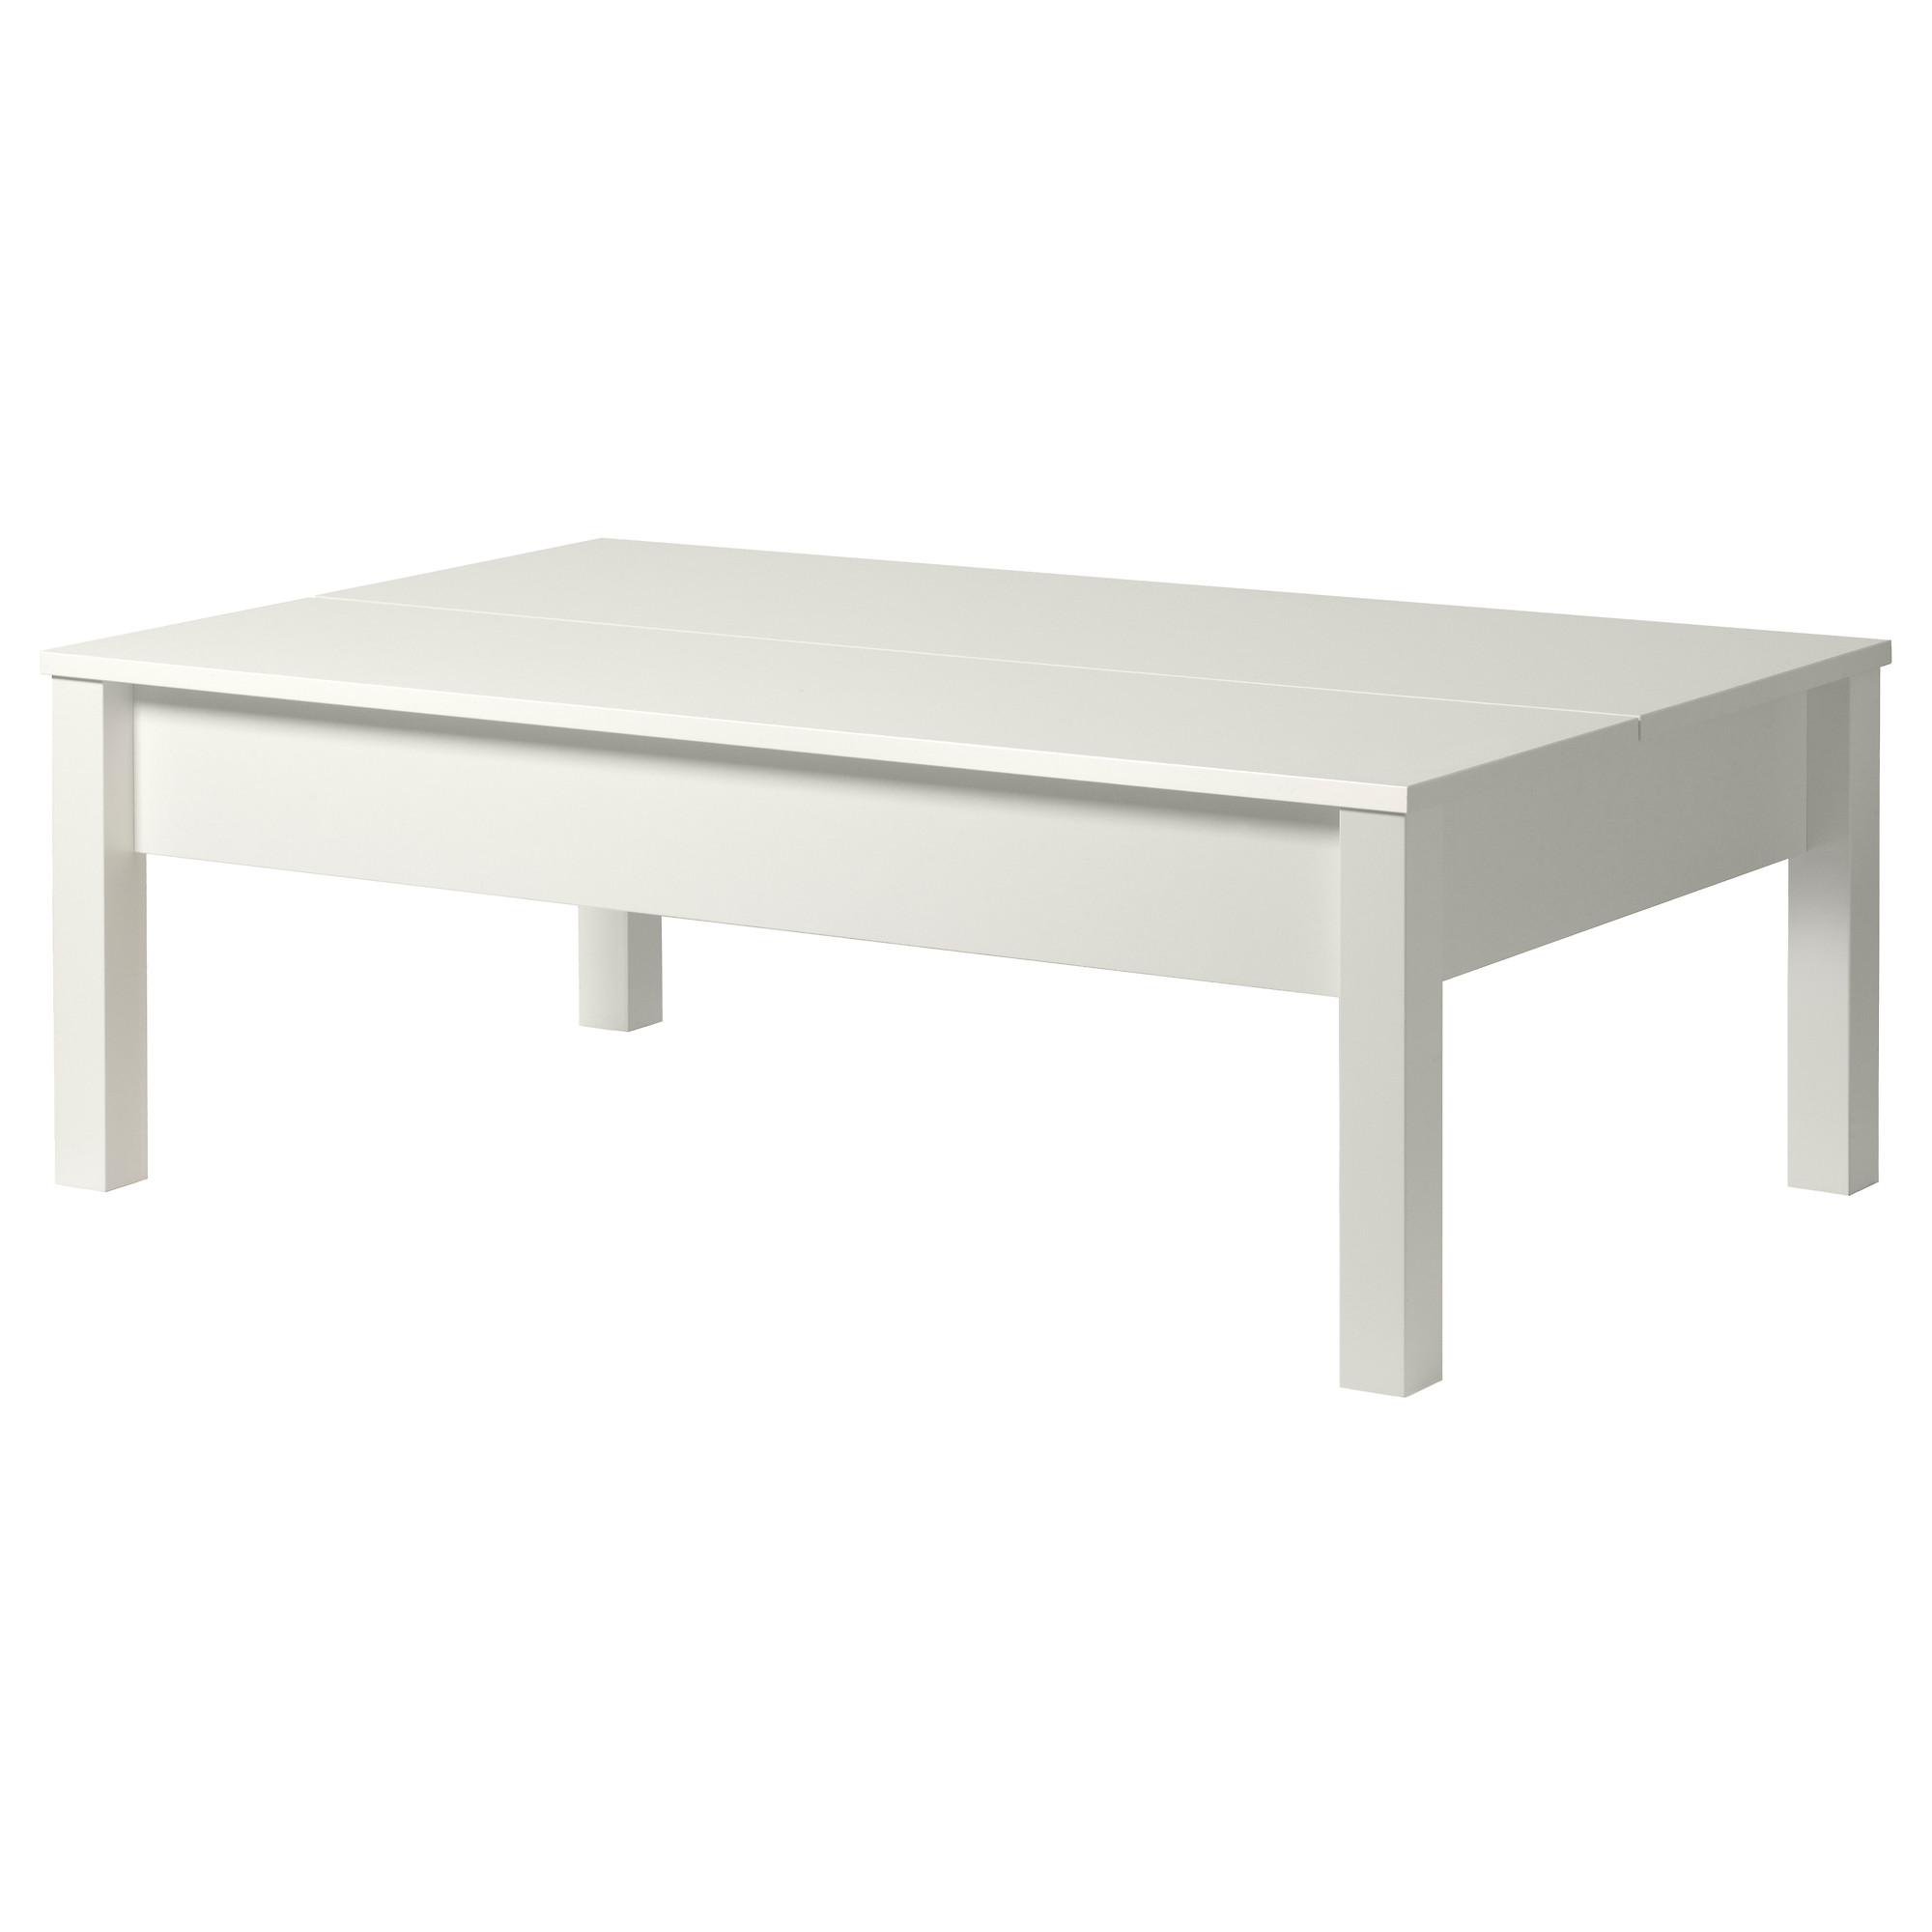 Table basse jardin ikea mobilier design d coration d 39 int rieur - Table de salon ikea ...